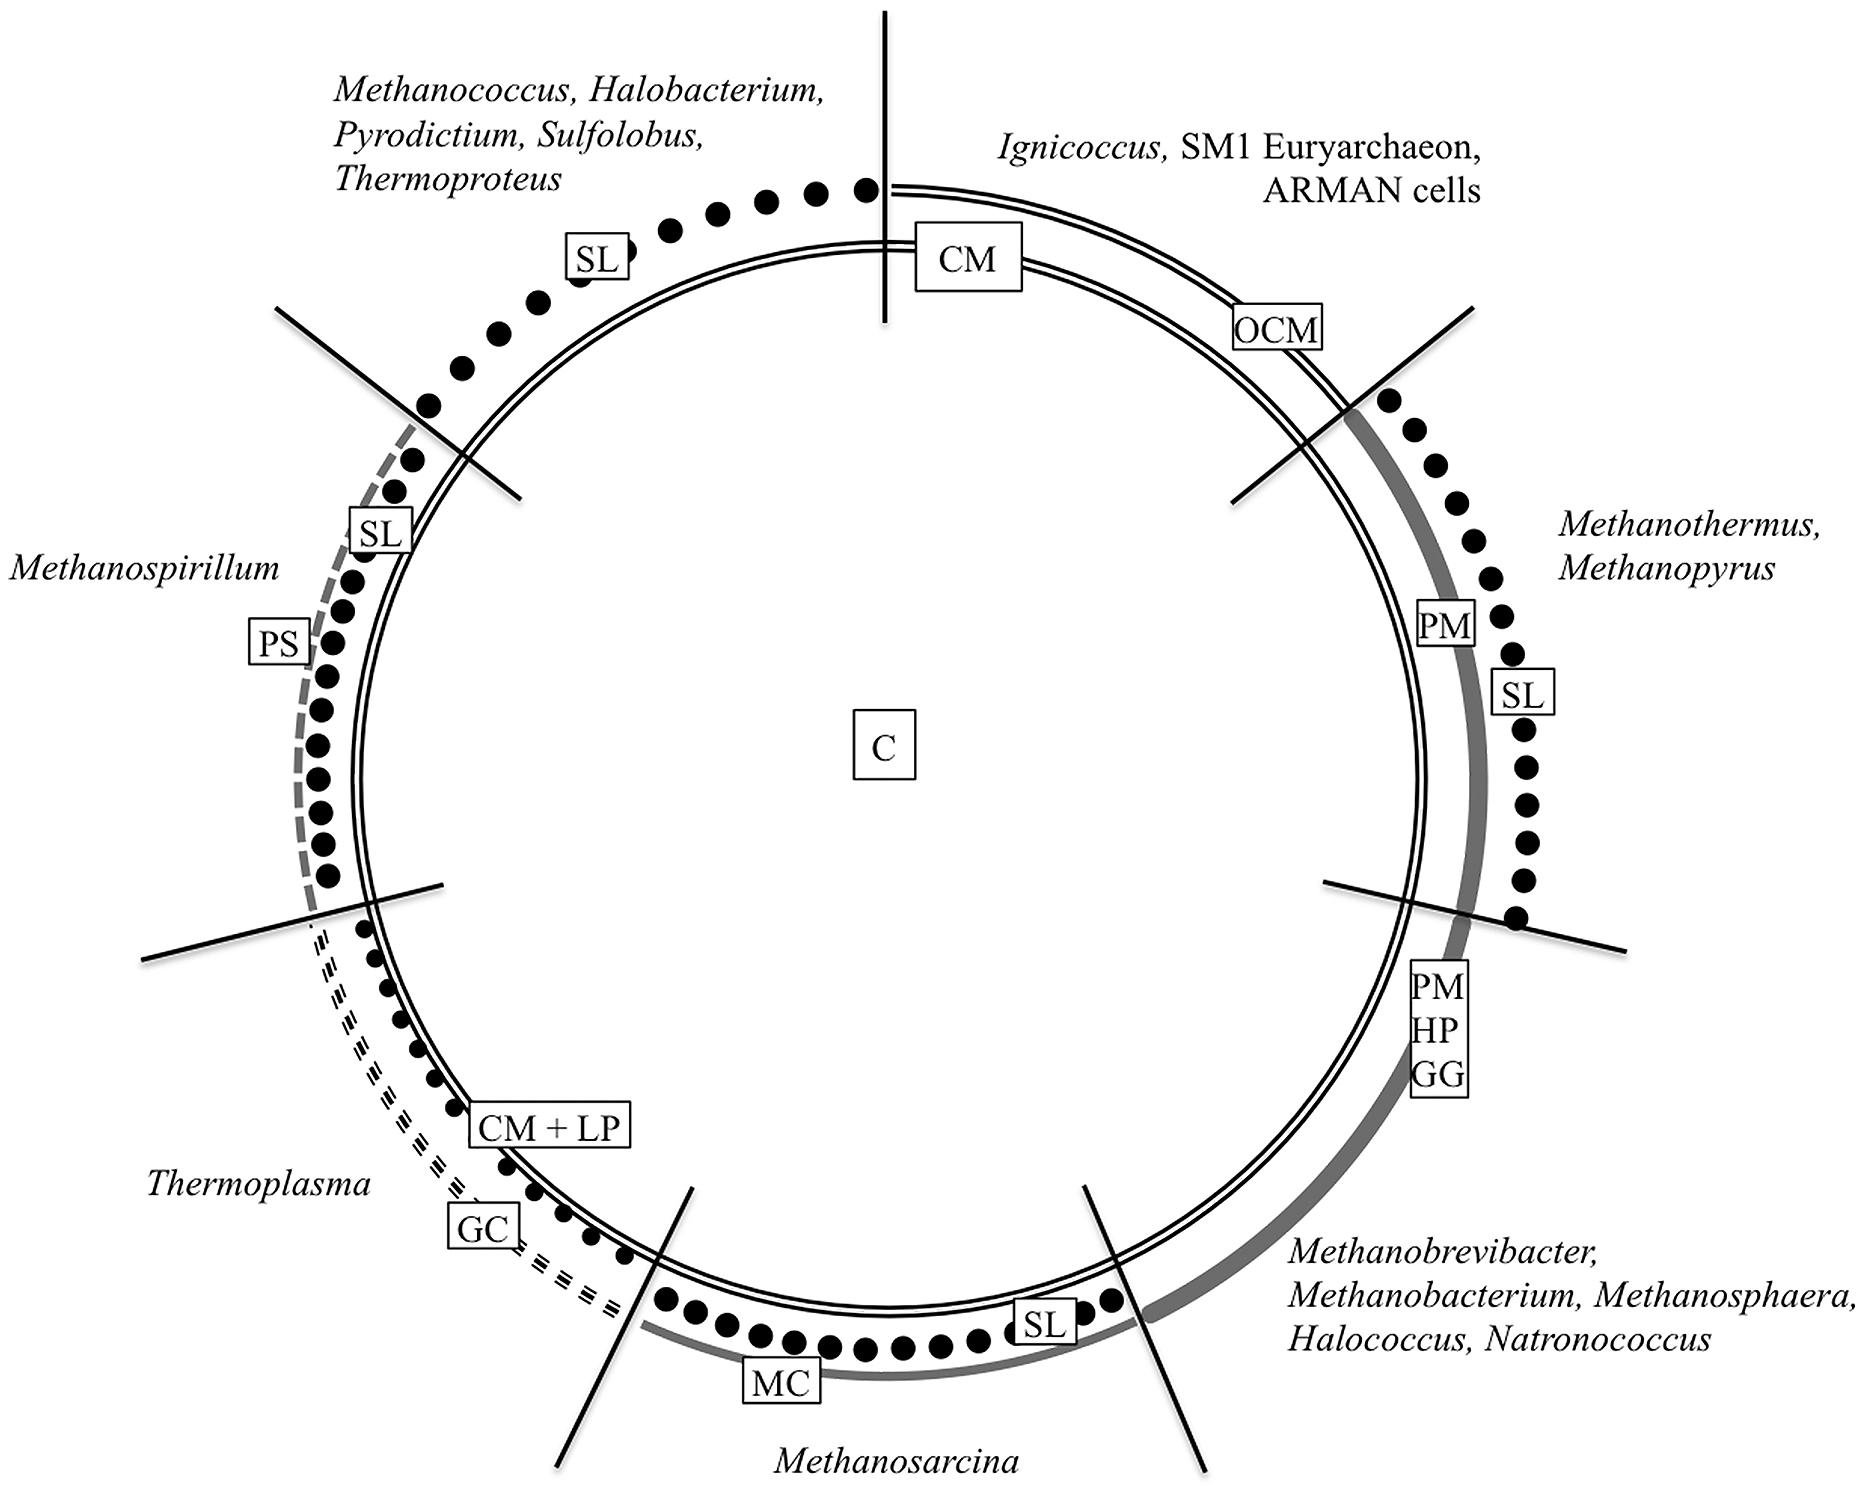 Frontiers S Layer And Cytoplasmic Membrane Exceptions From The Diagram Of Prokaryotic Cell By Mariana Ruiz